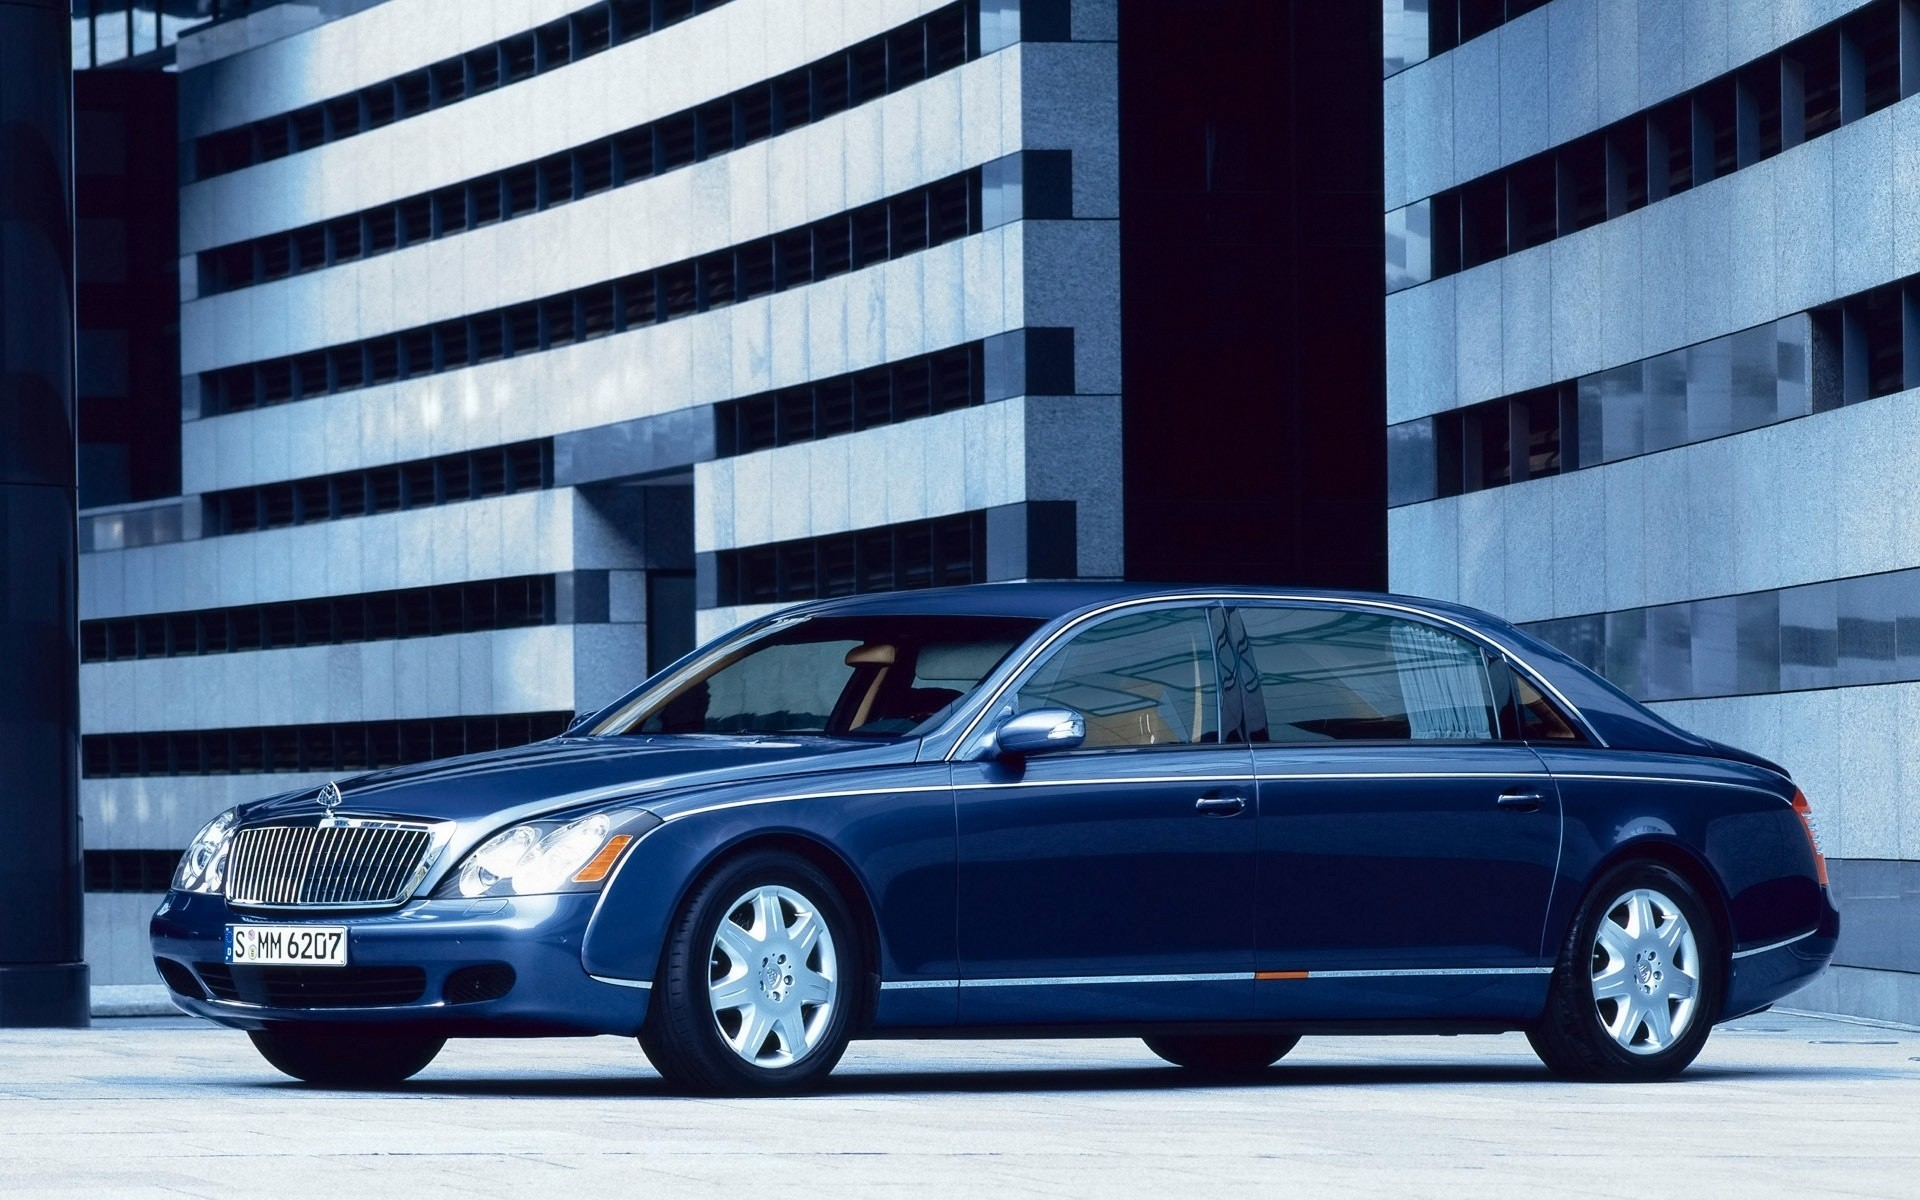 maybach car vehicle transportation system city pavement road street urban automotive maybach 62